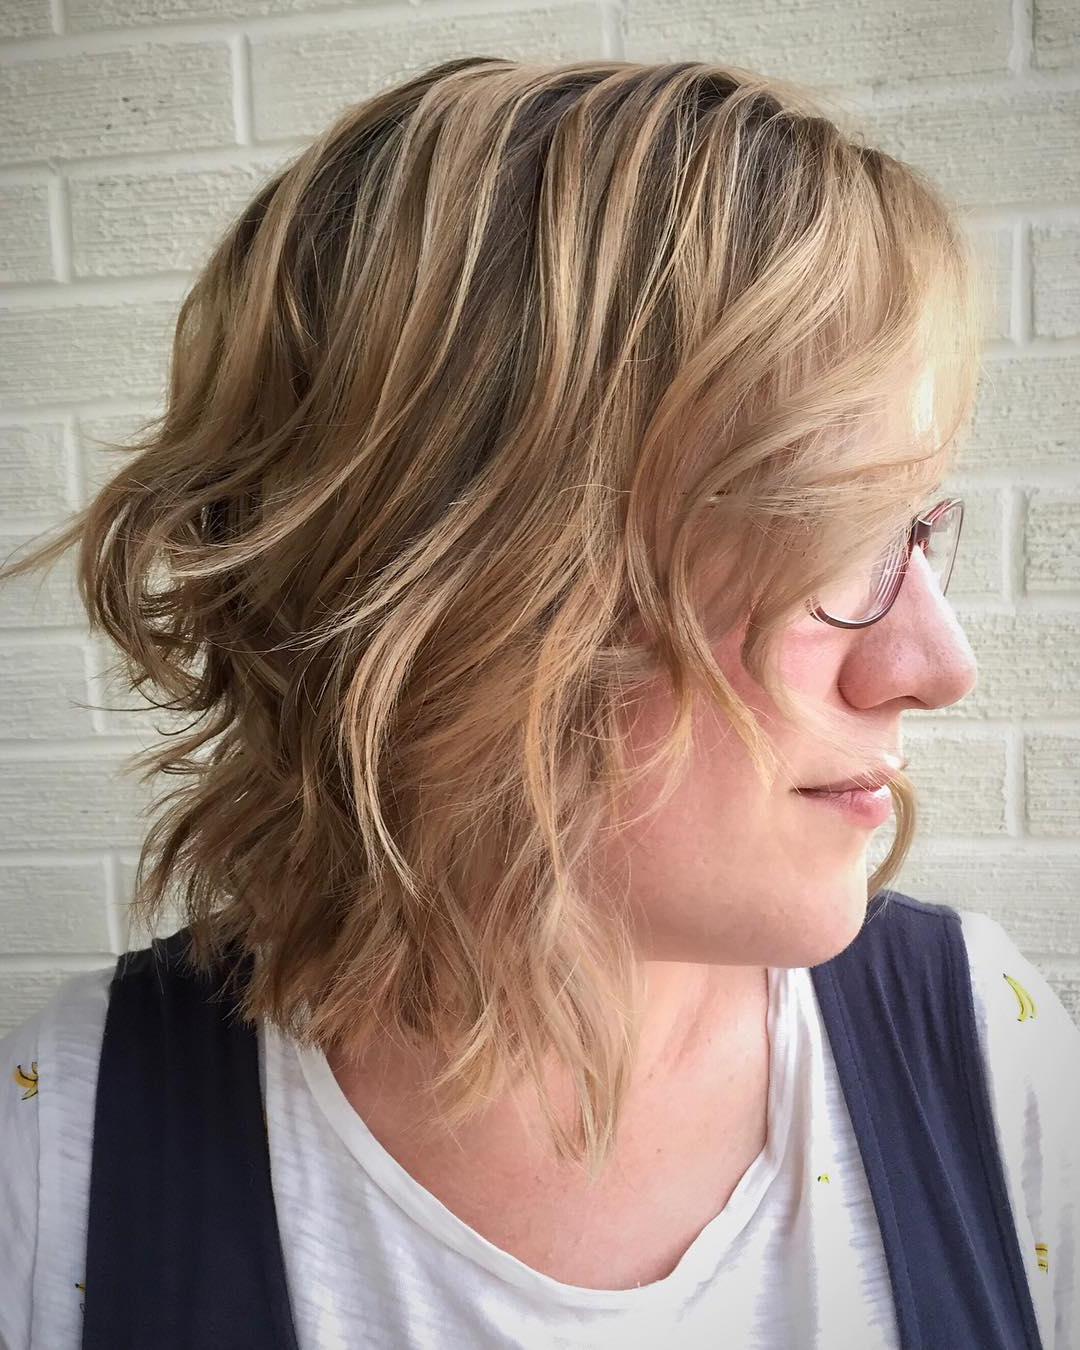 125 Coolest Shag Haircuts For All Ages – Prochronism For Famous Silver Shag Haircuts With Feathered Layers (View 14 of 20)